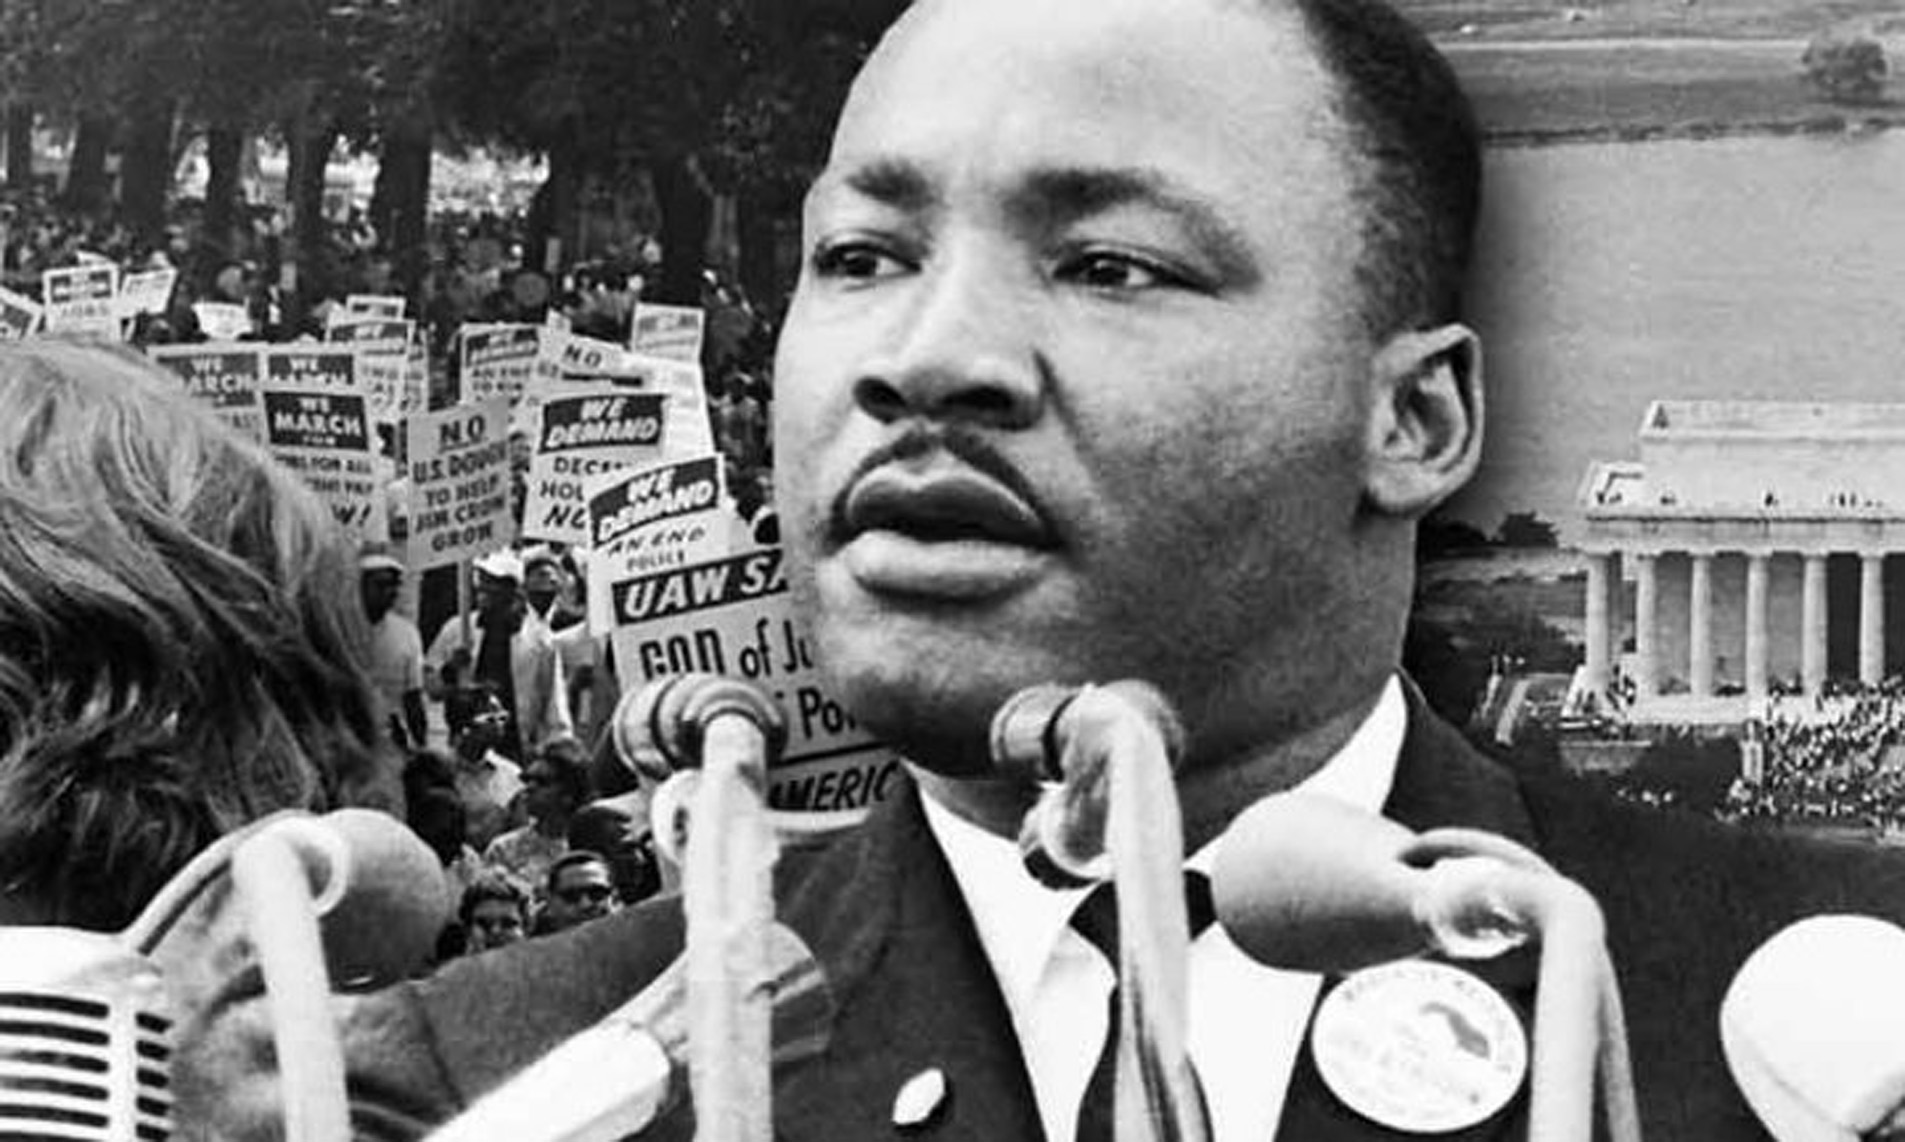 ¿Es factible la utopía de Martin Luther King?